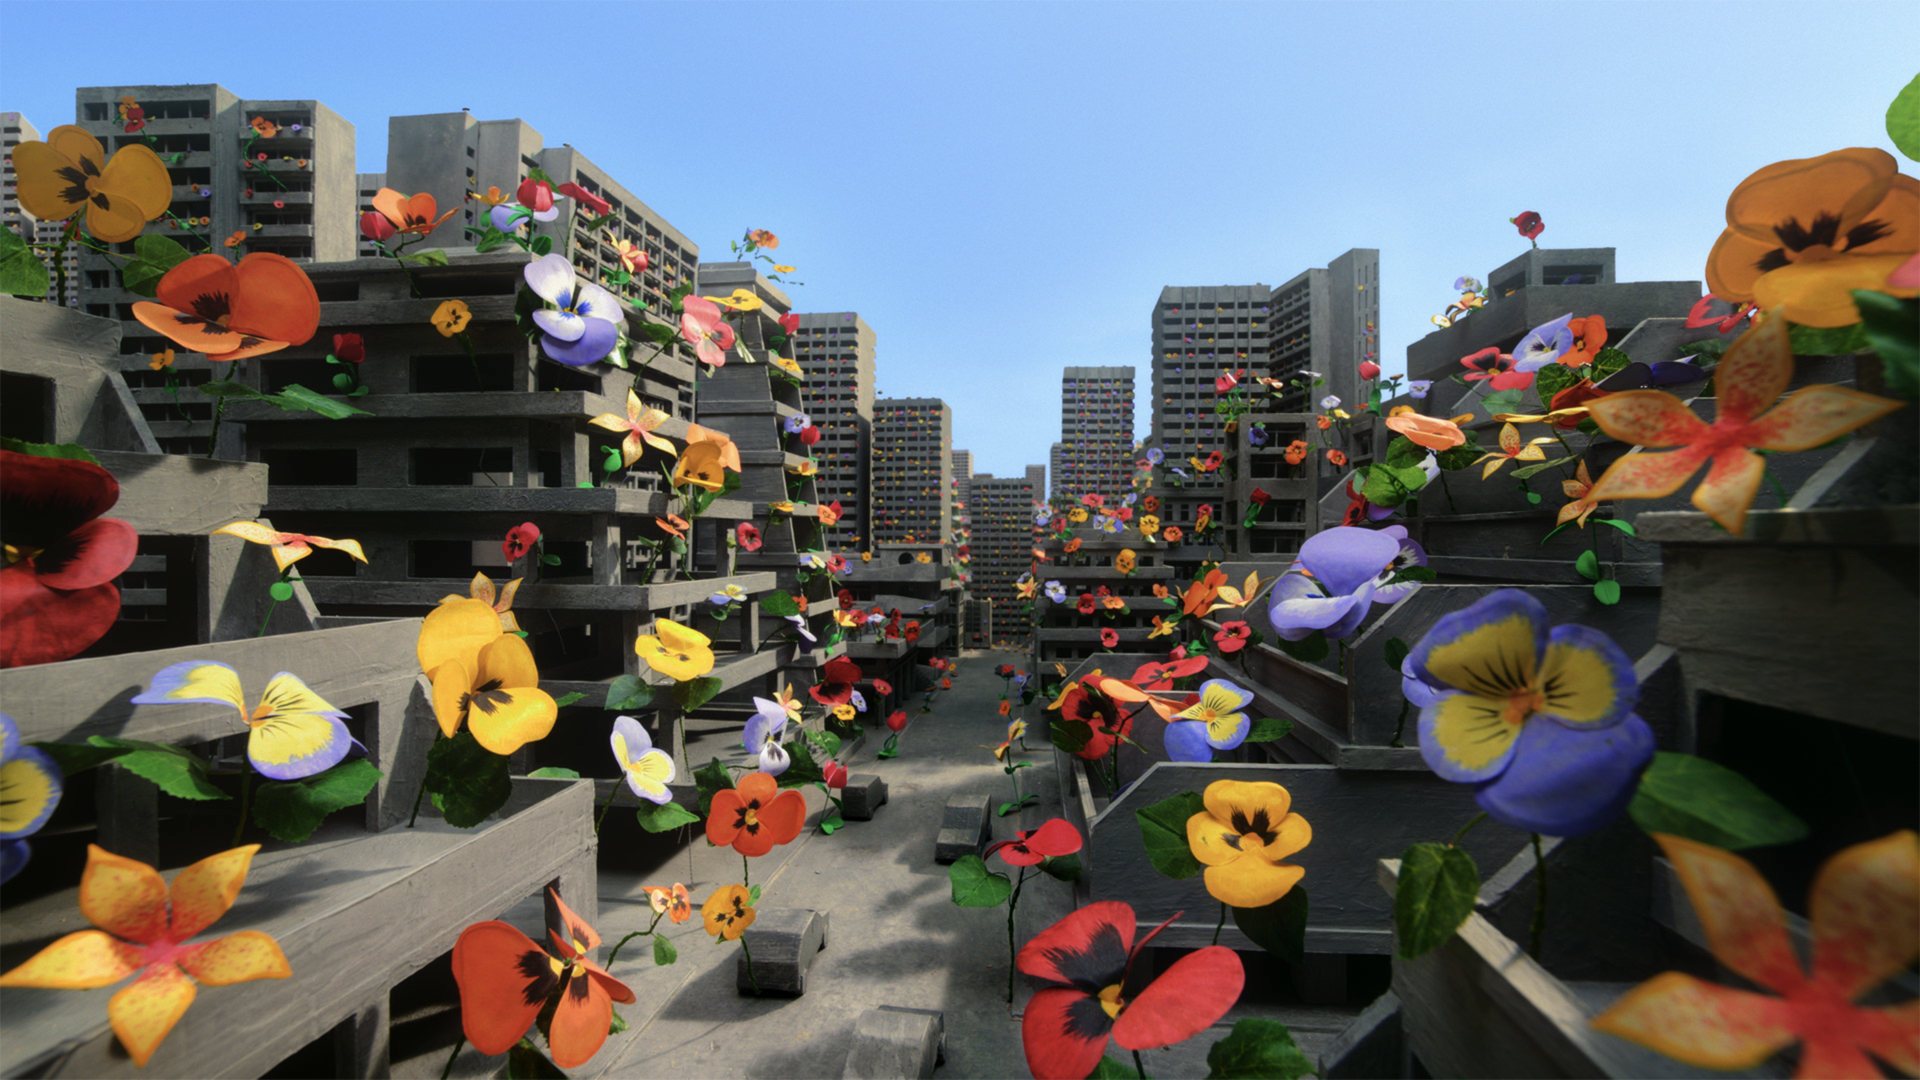 a virtual-made cities with flowers all over the buildings